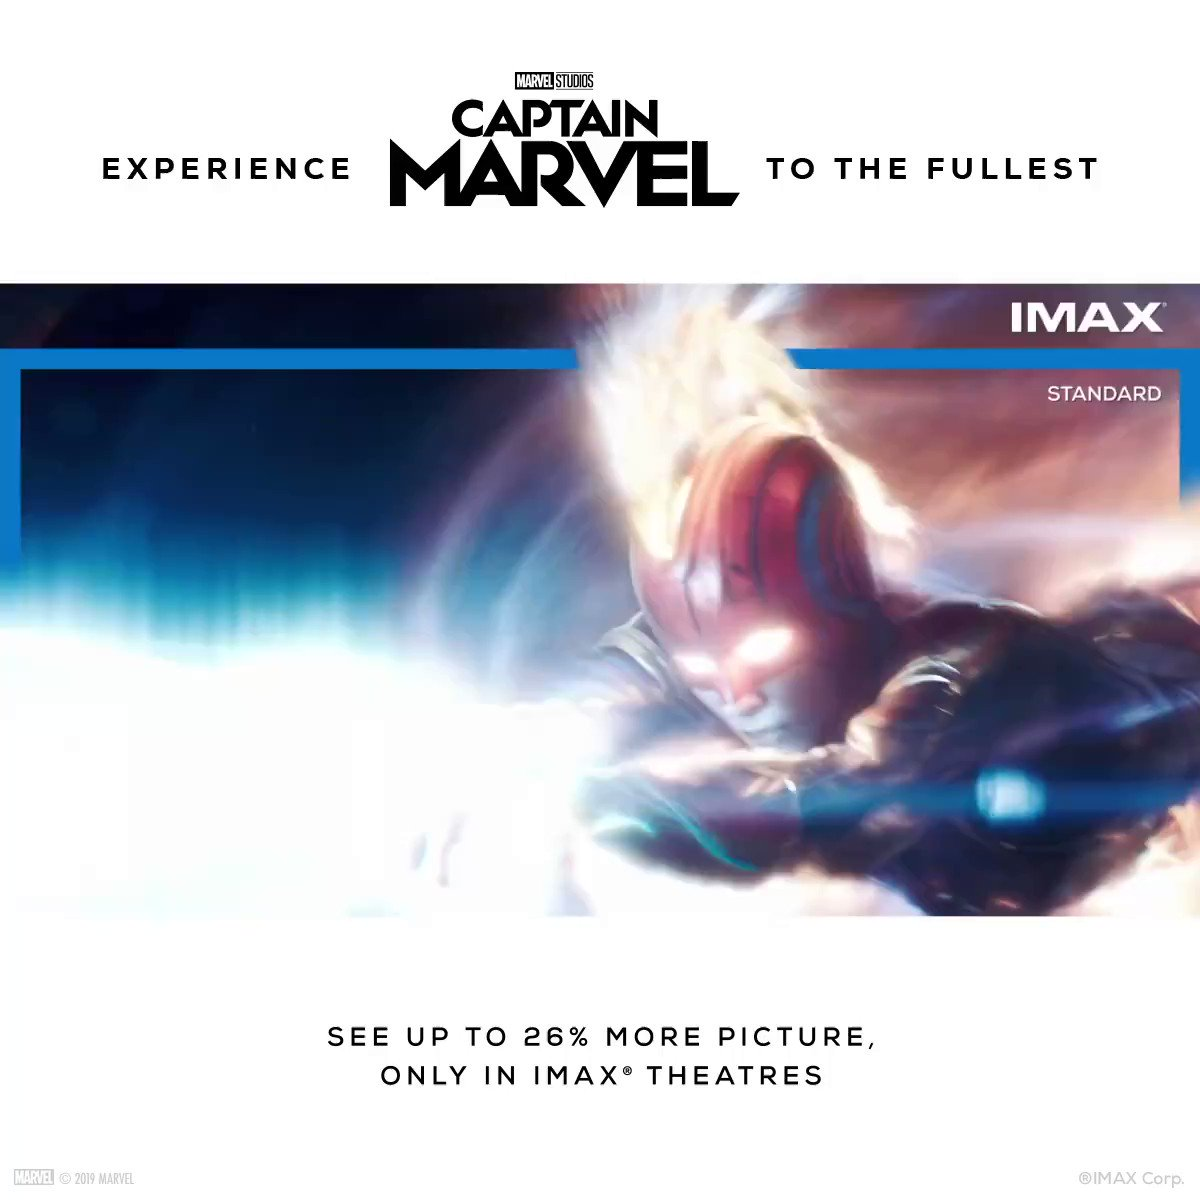 Characters as powerful as Carol Danvers deserve the most powerful cinema screens. 💥 Jump back into the MCU and immerse yourself in Marvel Studios's #CaptainMarvel in the IMAX to see up to 26% more picture. 🤯 Know more on https://voxcinemas.info/2I9ZpLE. #CaptainMarvelatVOX